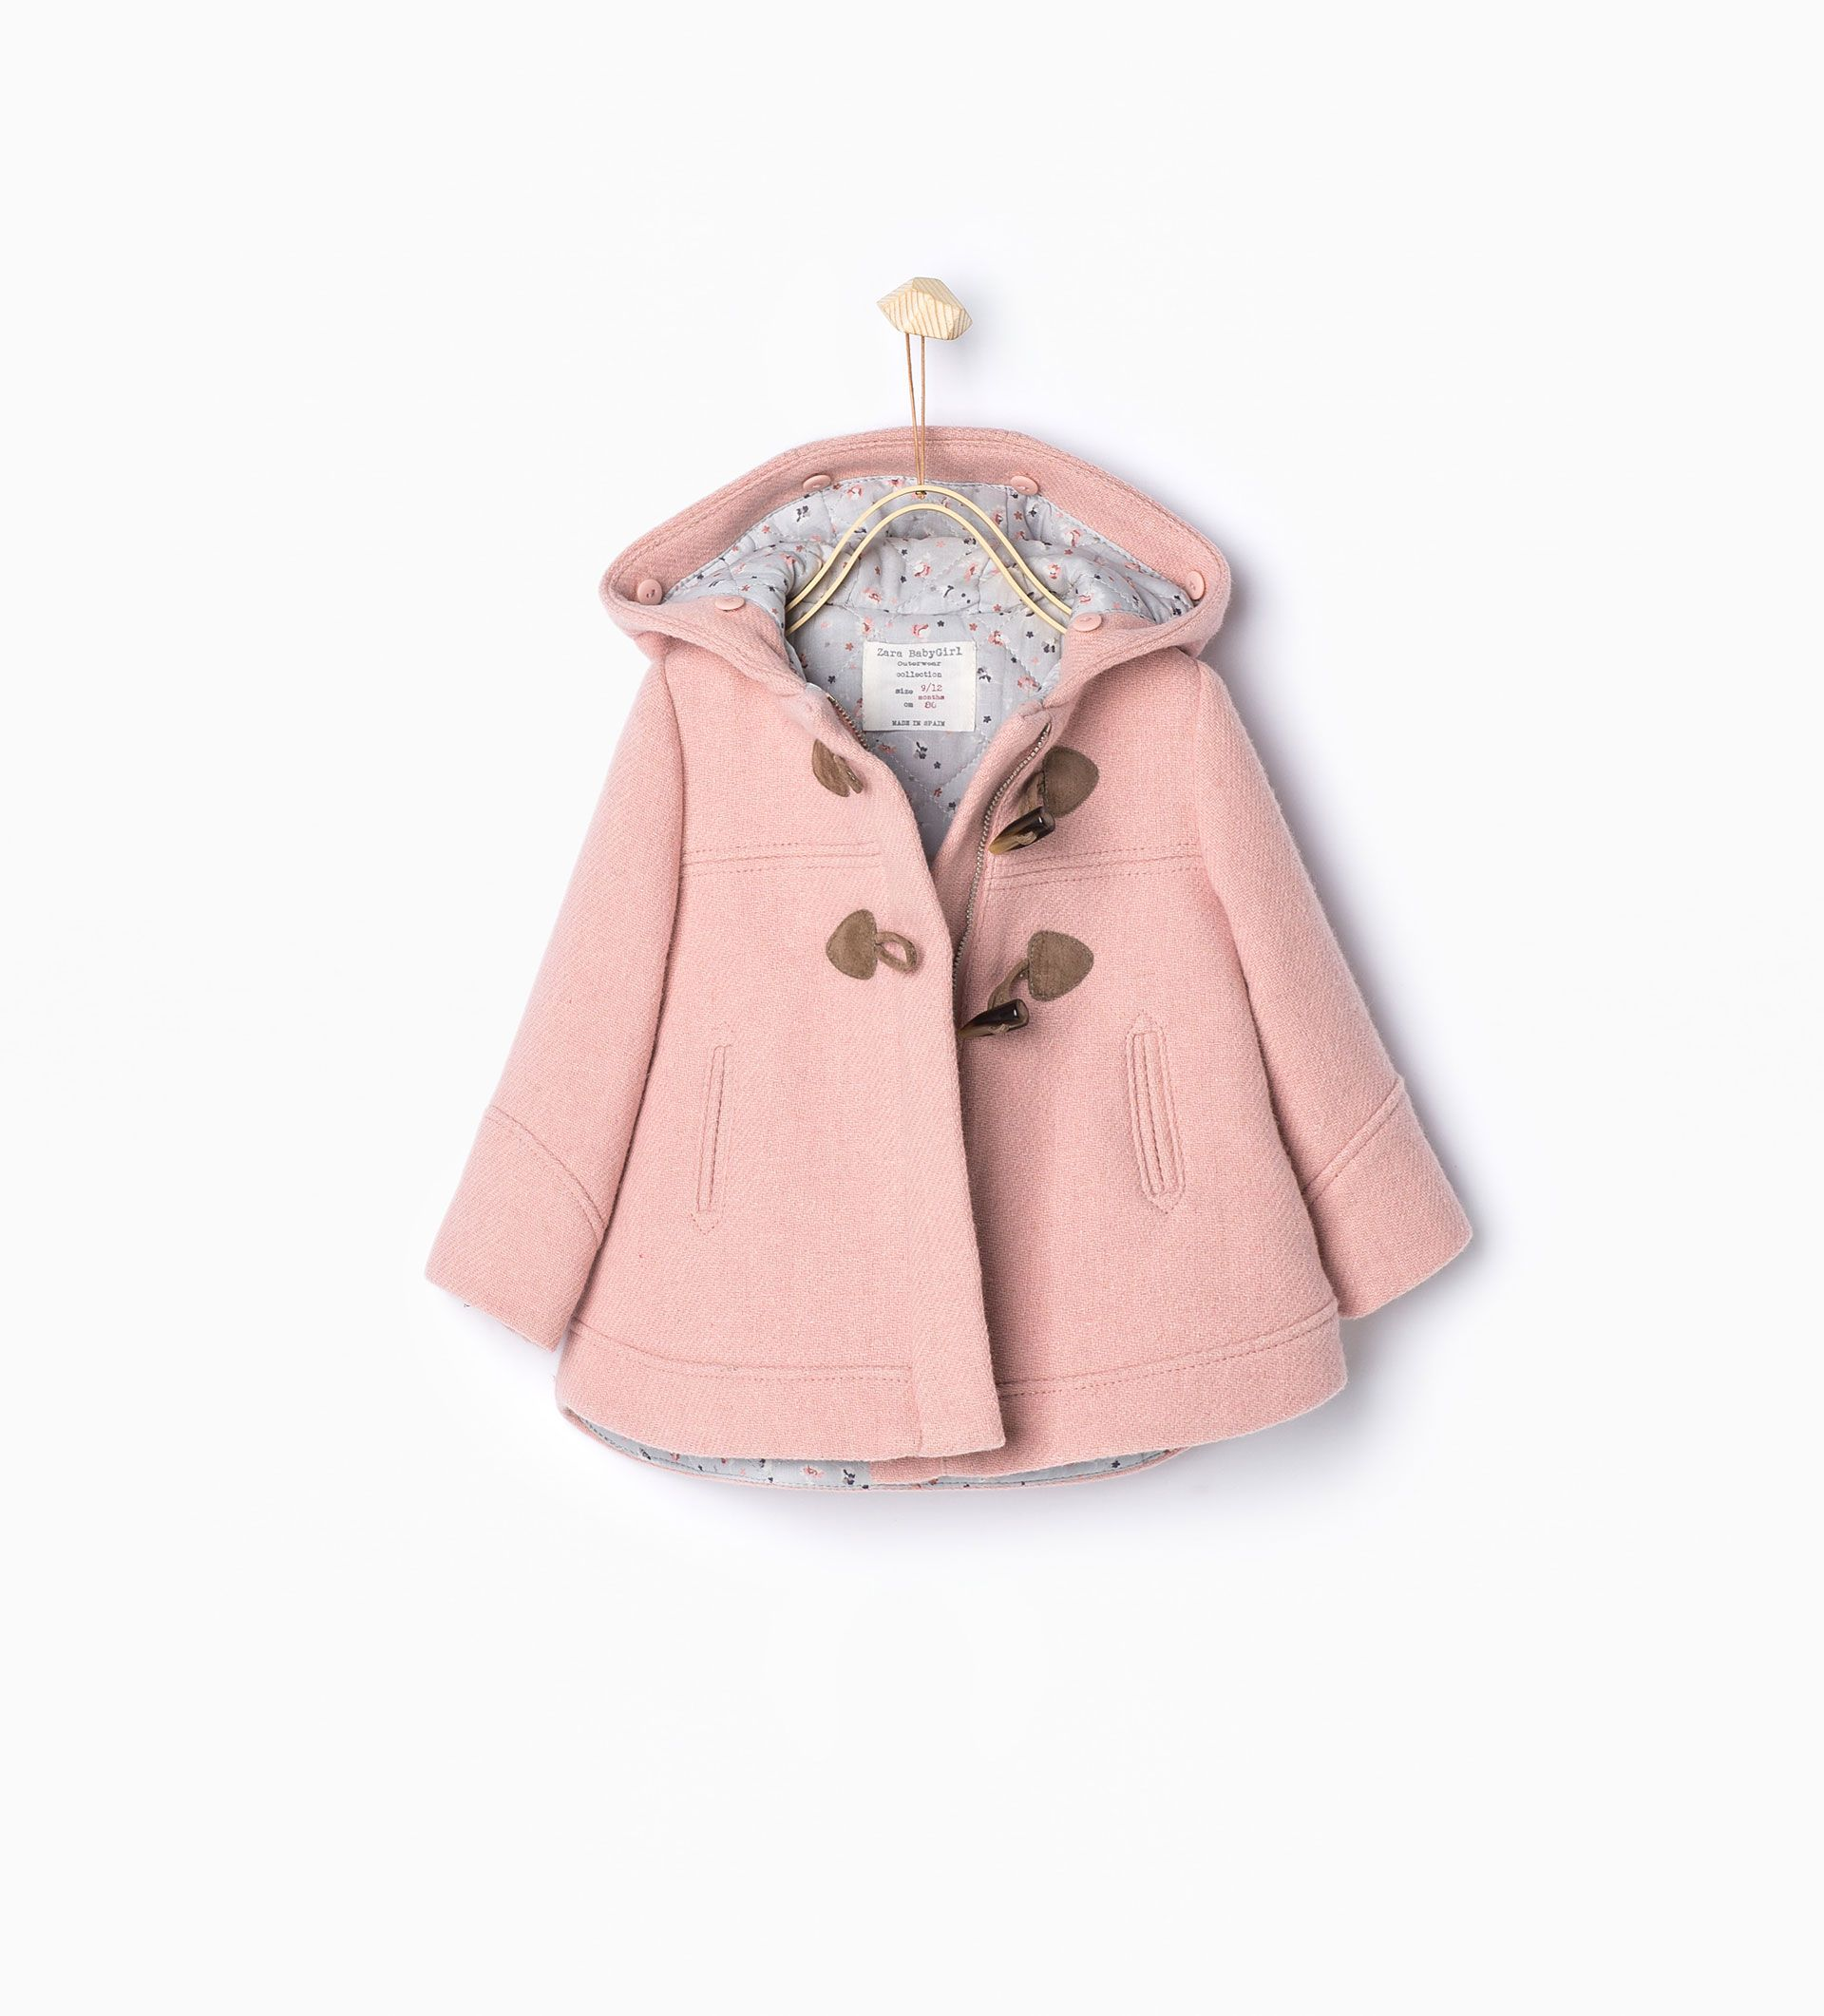 22d27375e Coats - Baby girl (3 months - 3 years) - KIDS